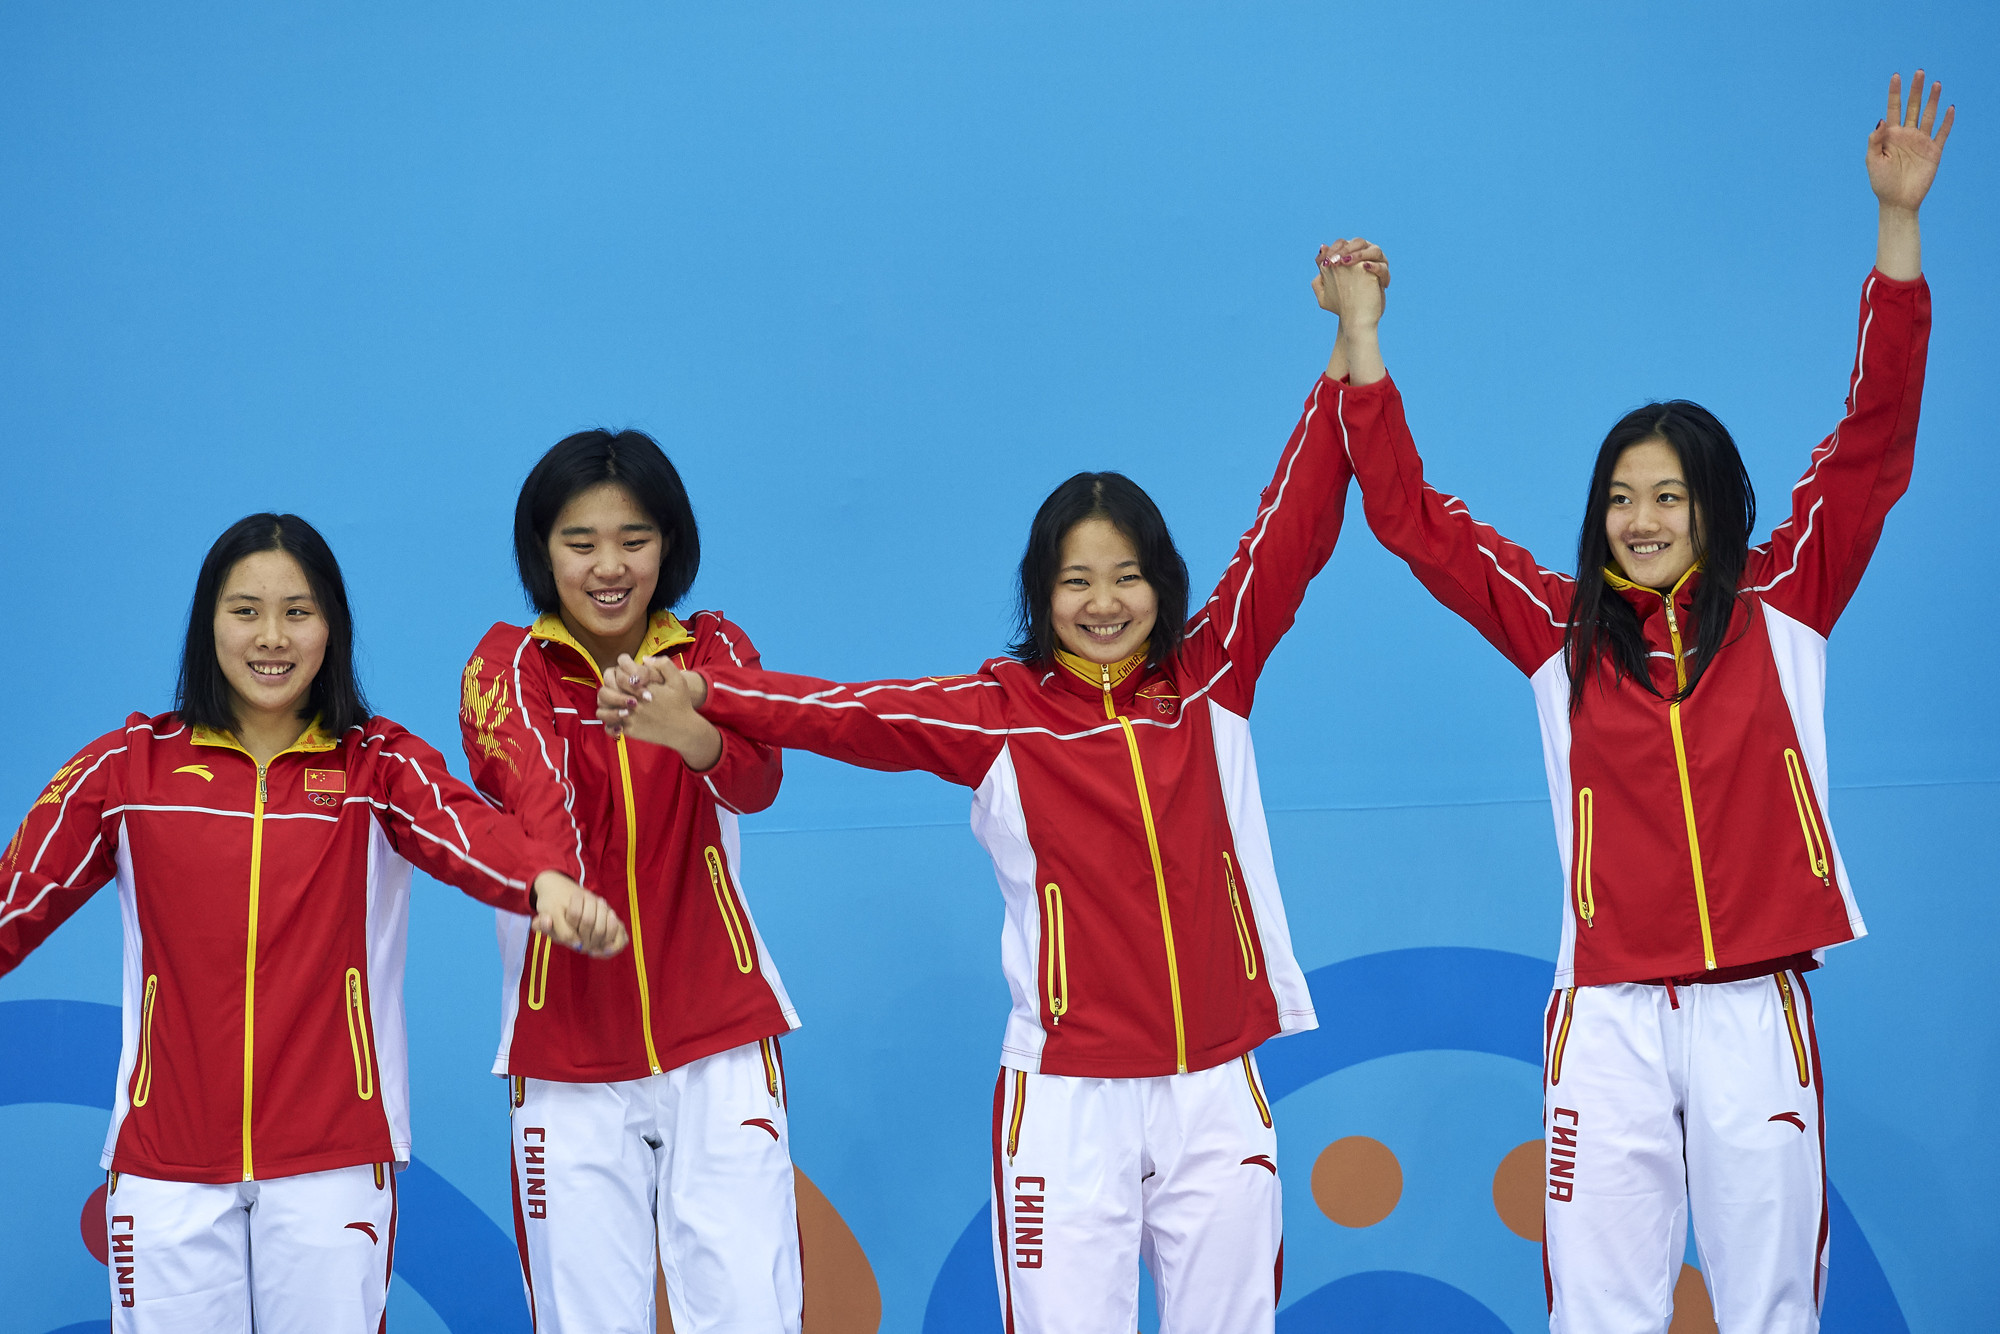 One of China's three short course swimming gold medals today came in the women's 4x50 metres freestyle relay ©Ashgabat 2017/Nikita Bossav/Laurel Photo Services